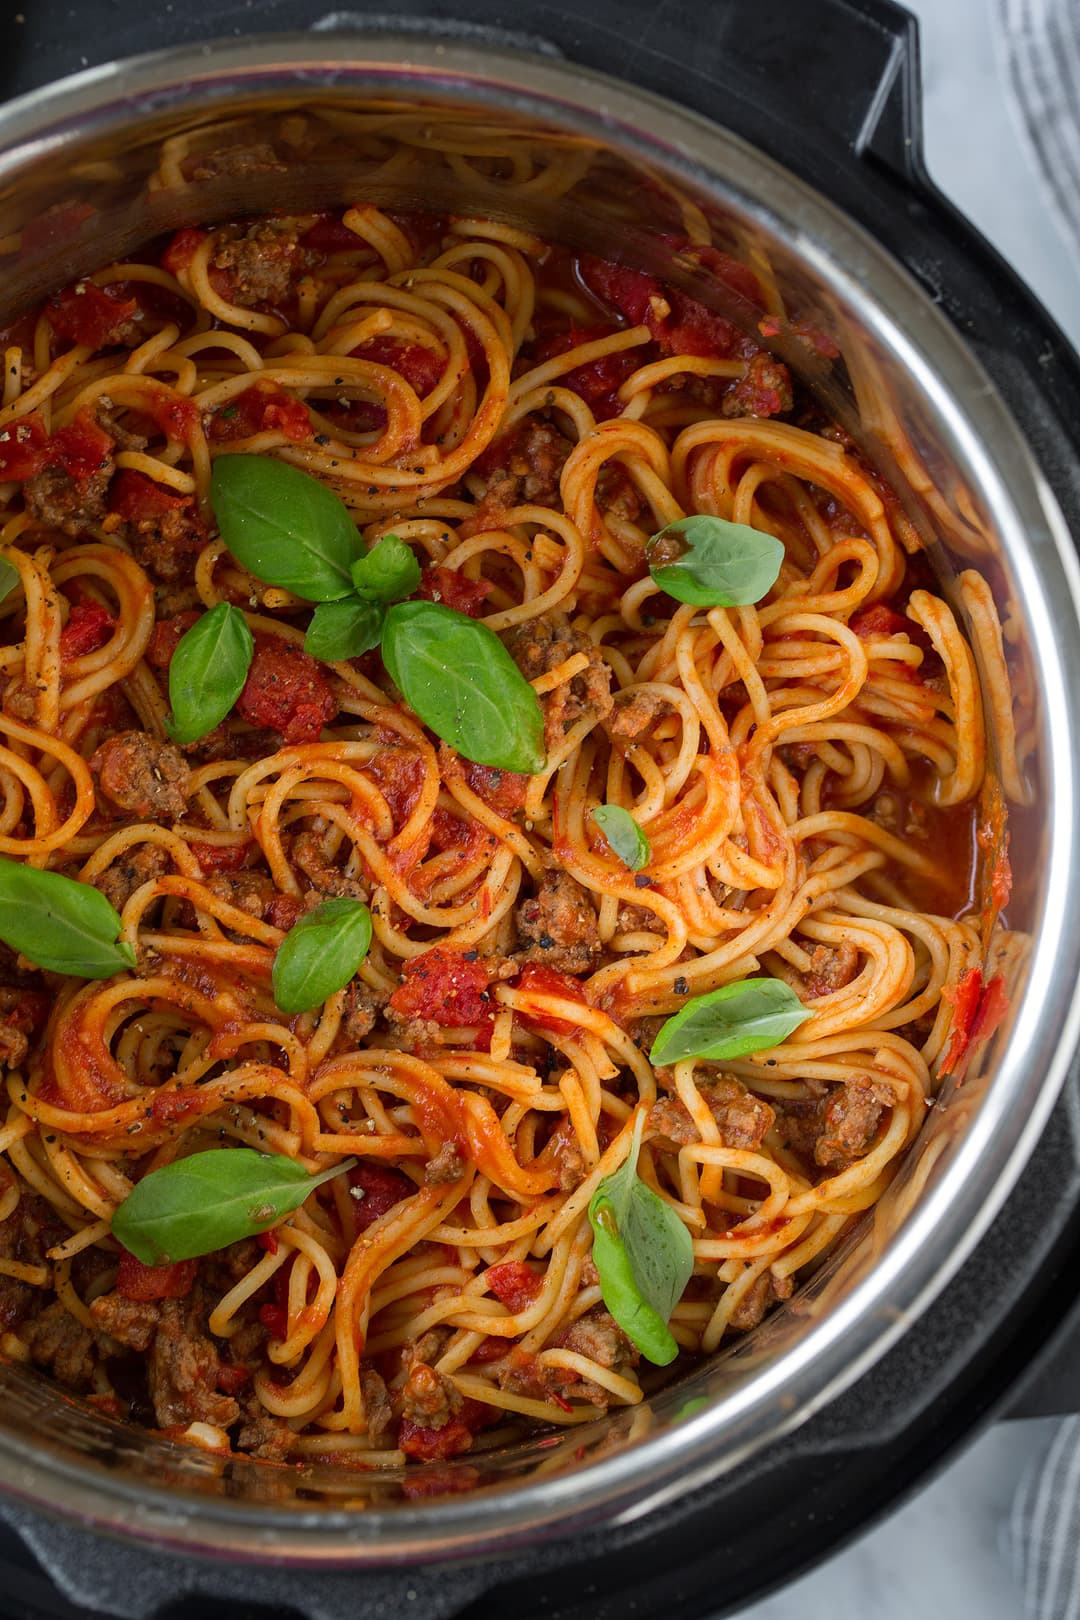 Instant Pot Spaghetti shown here after cooking in the instant pot garnished with fresh basil